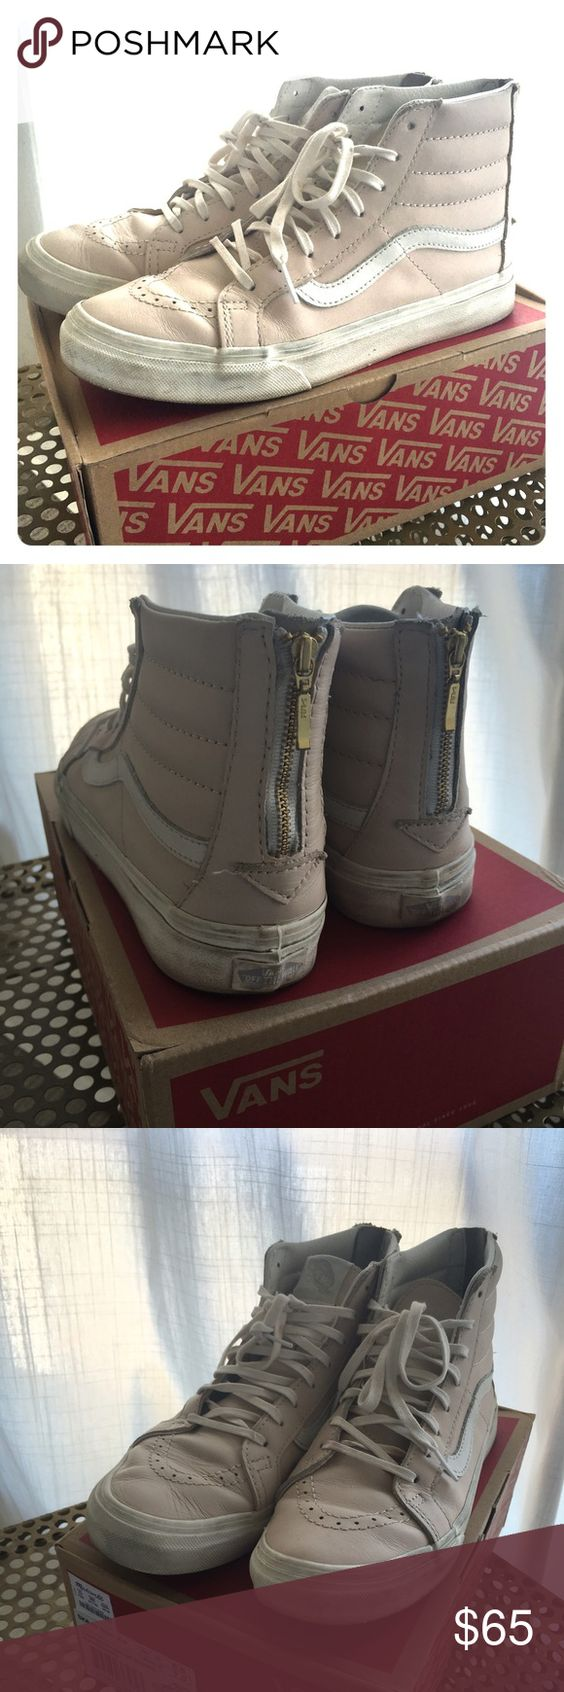 Vans Leather SK8-HI Slim Zip Pink Size 7.5 Lace-up high top with a zipper entry at the heel, leather uppers, signature rubber waffle outsoles, and padded collars for support and flexibility. Color: whispering pink/blanc de blanc US size 7.5.  Slightly used, pretty new Vans Shoes Sneakers